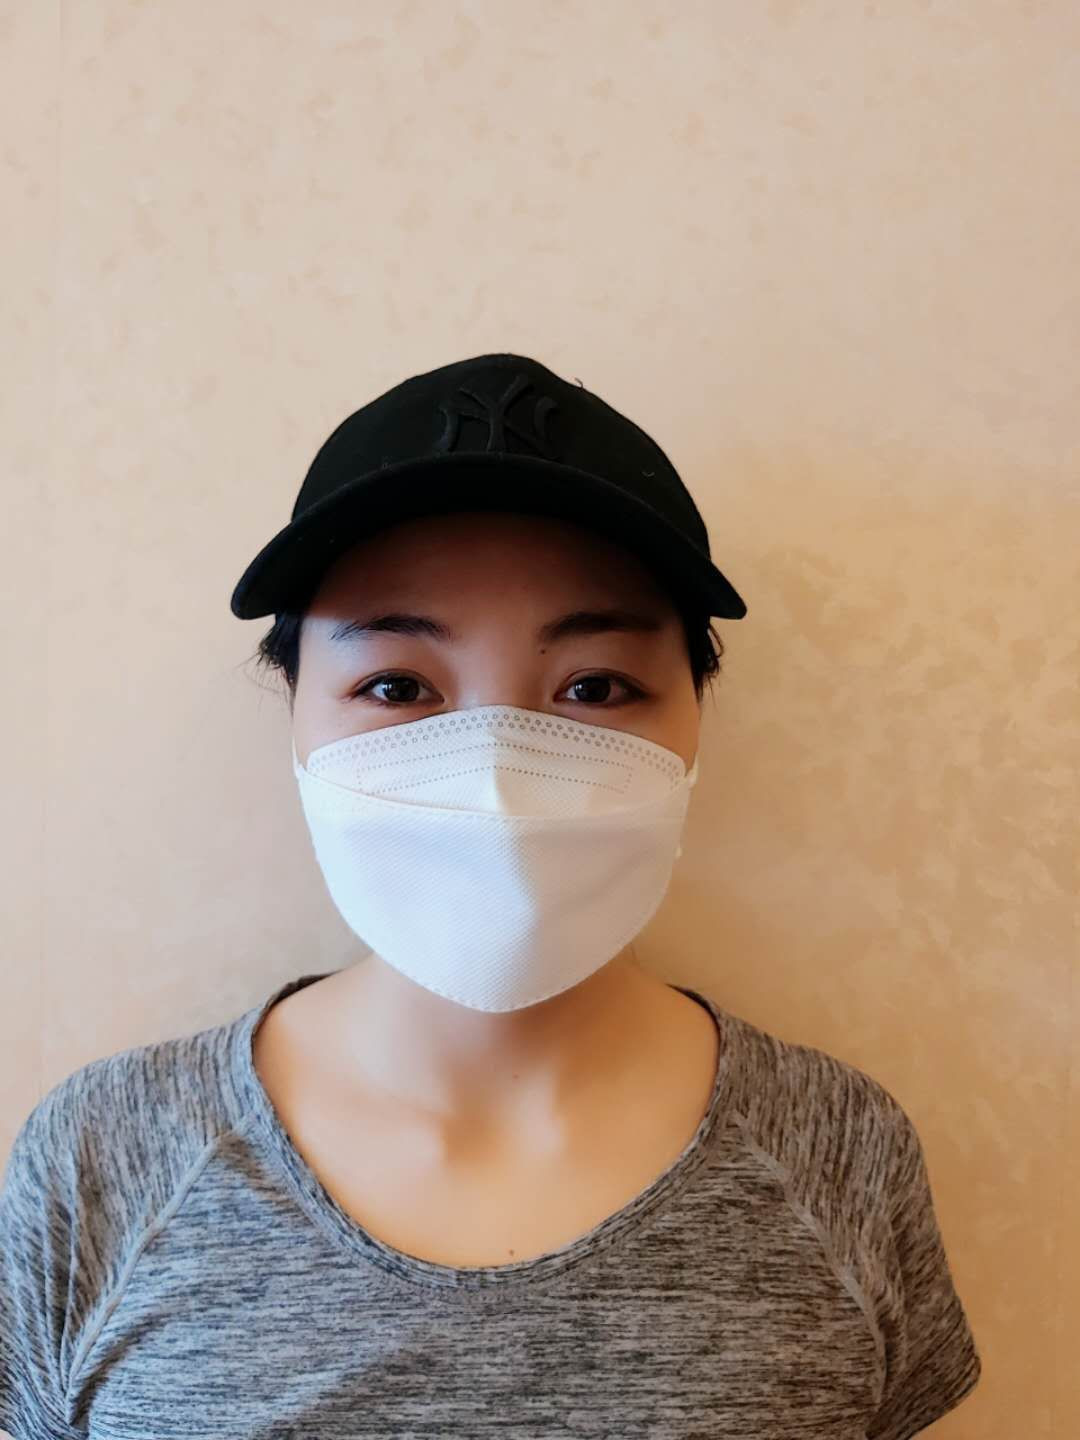 Import KN95 face mask from China